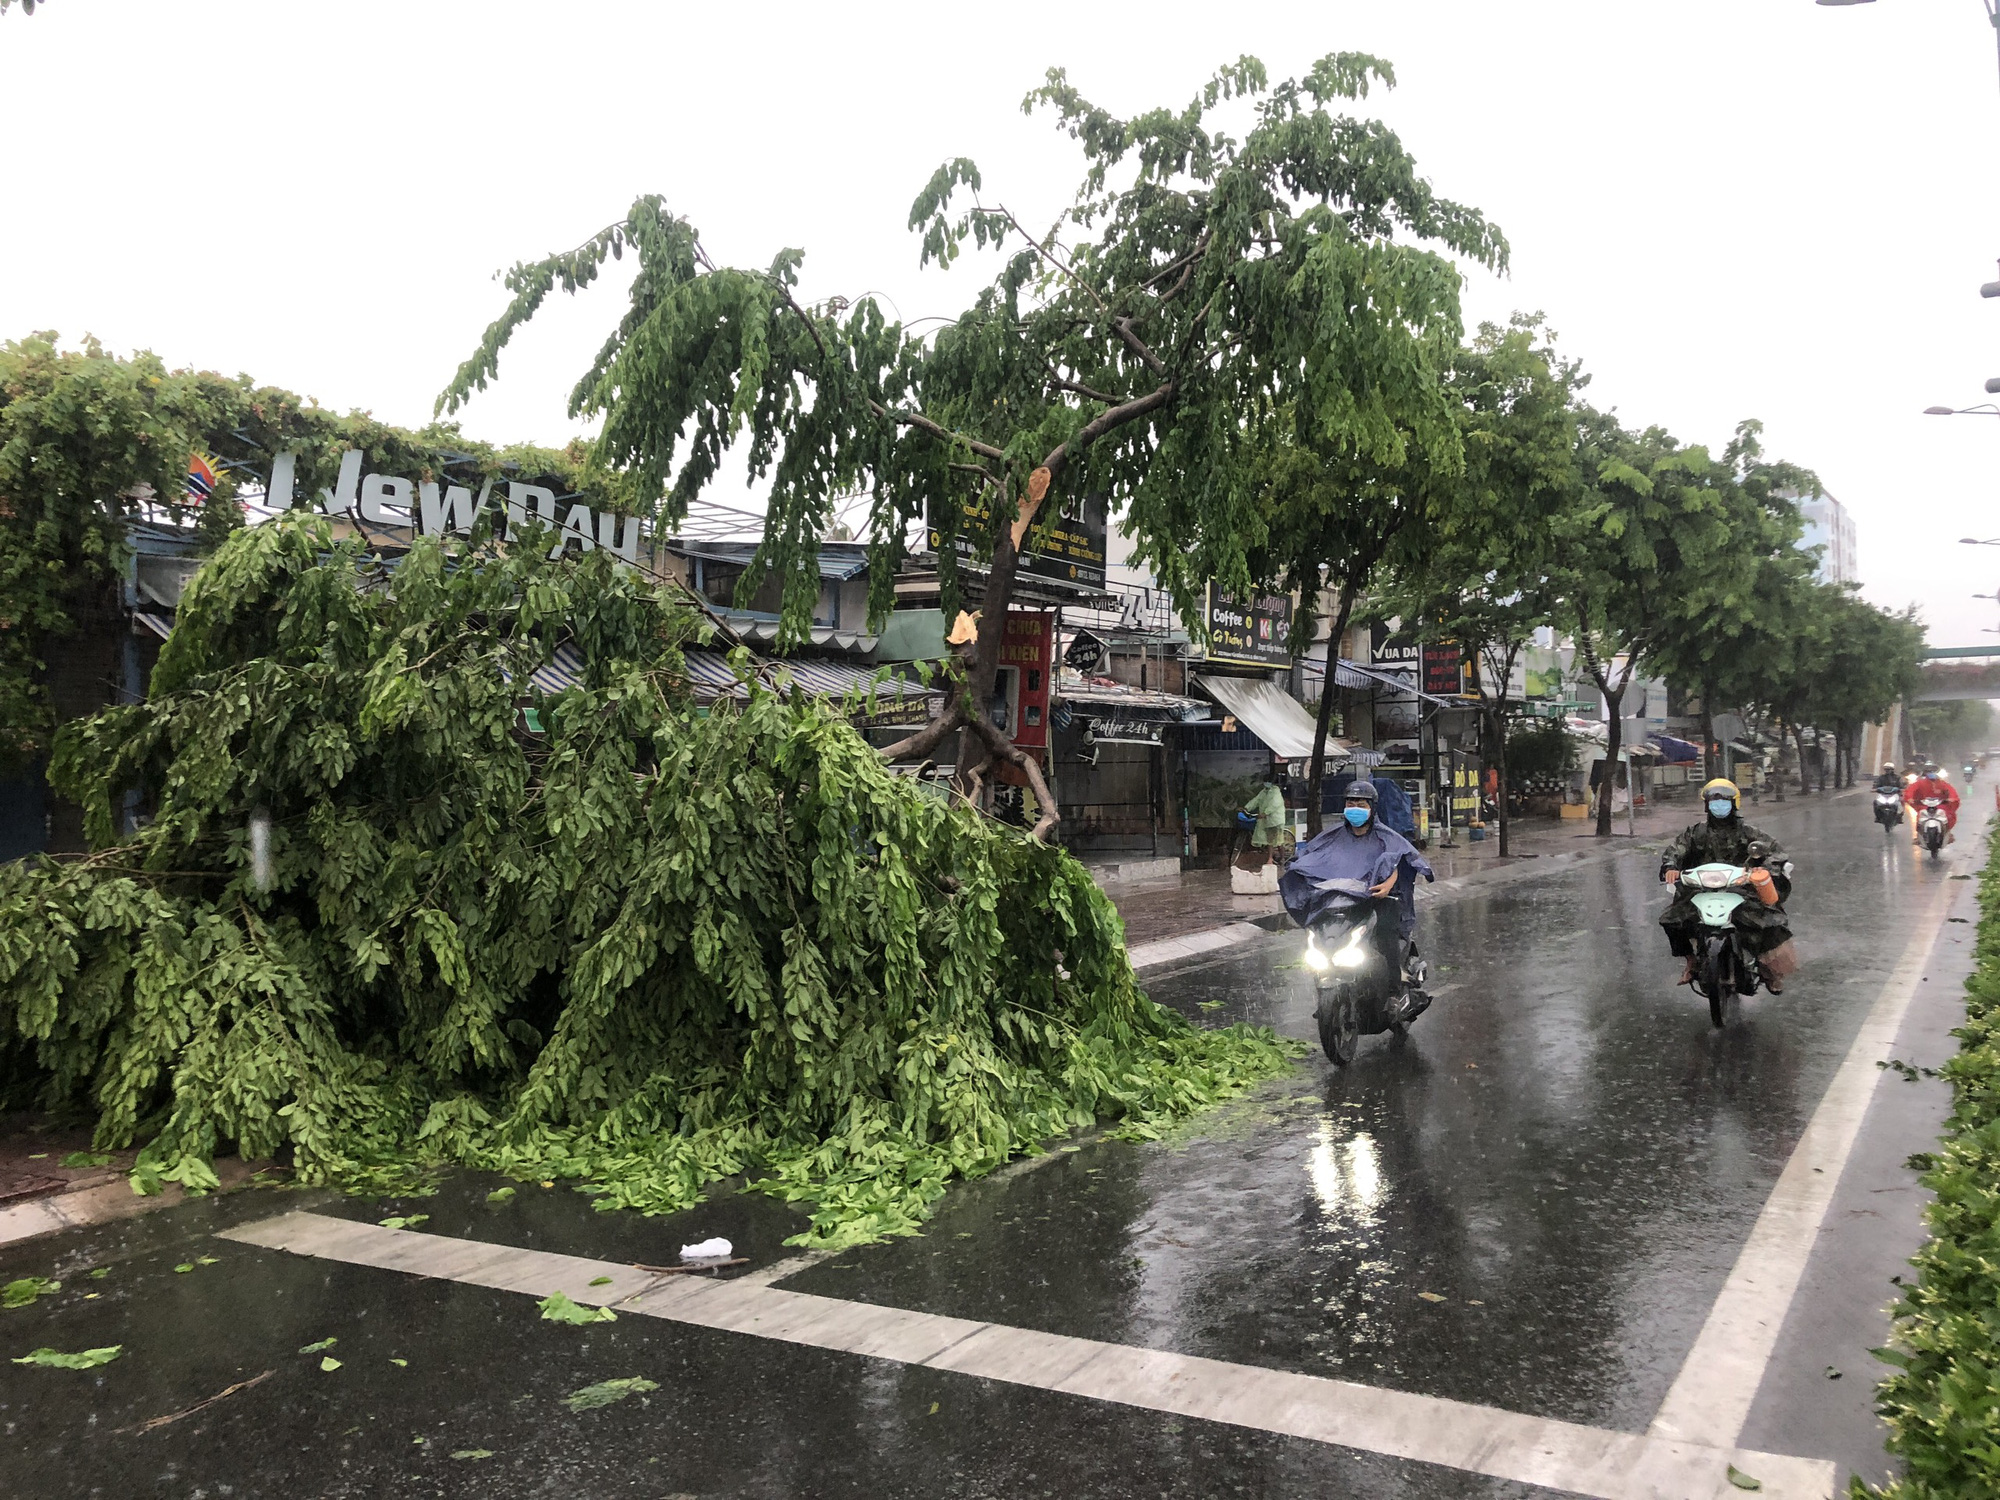 A tree is uprooted during a heavy rain on Pham Van Dong Street in Binh Thanh District, Ho Chi Minh City, July 19, 2021. Photo: Chau Tuan / Tuoi Tre